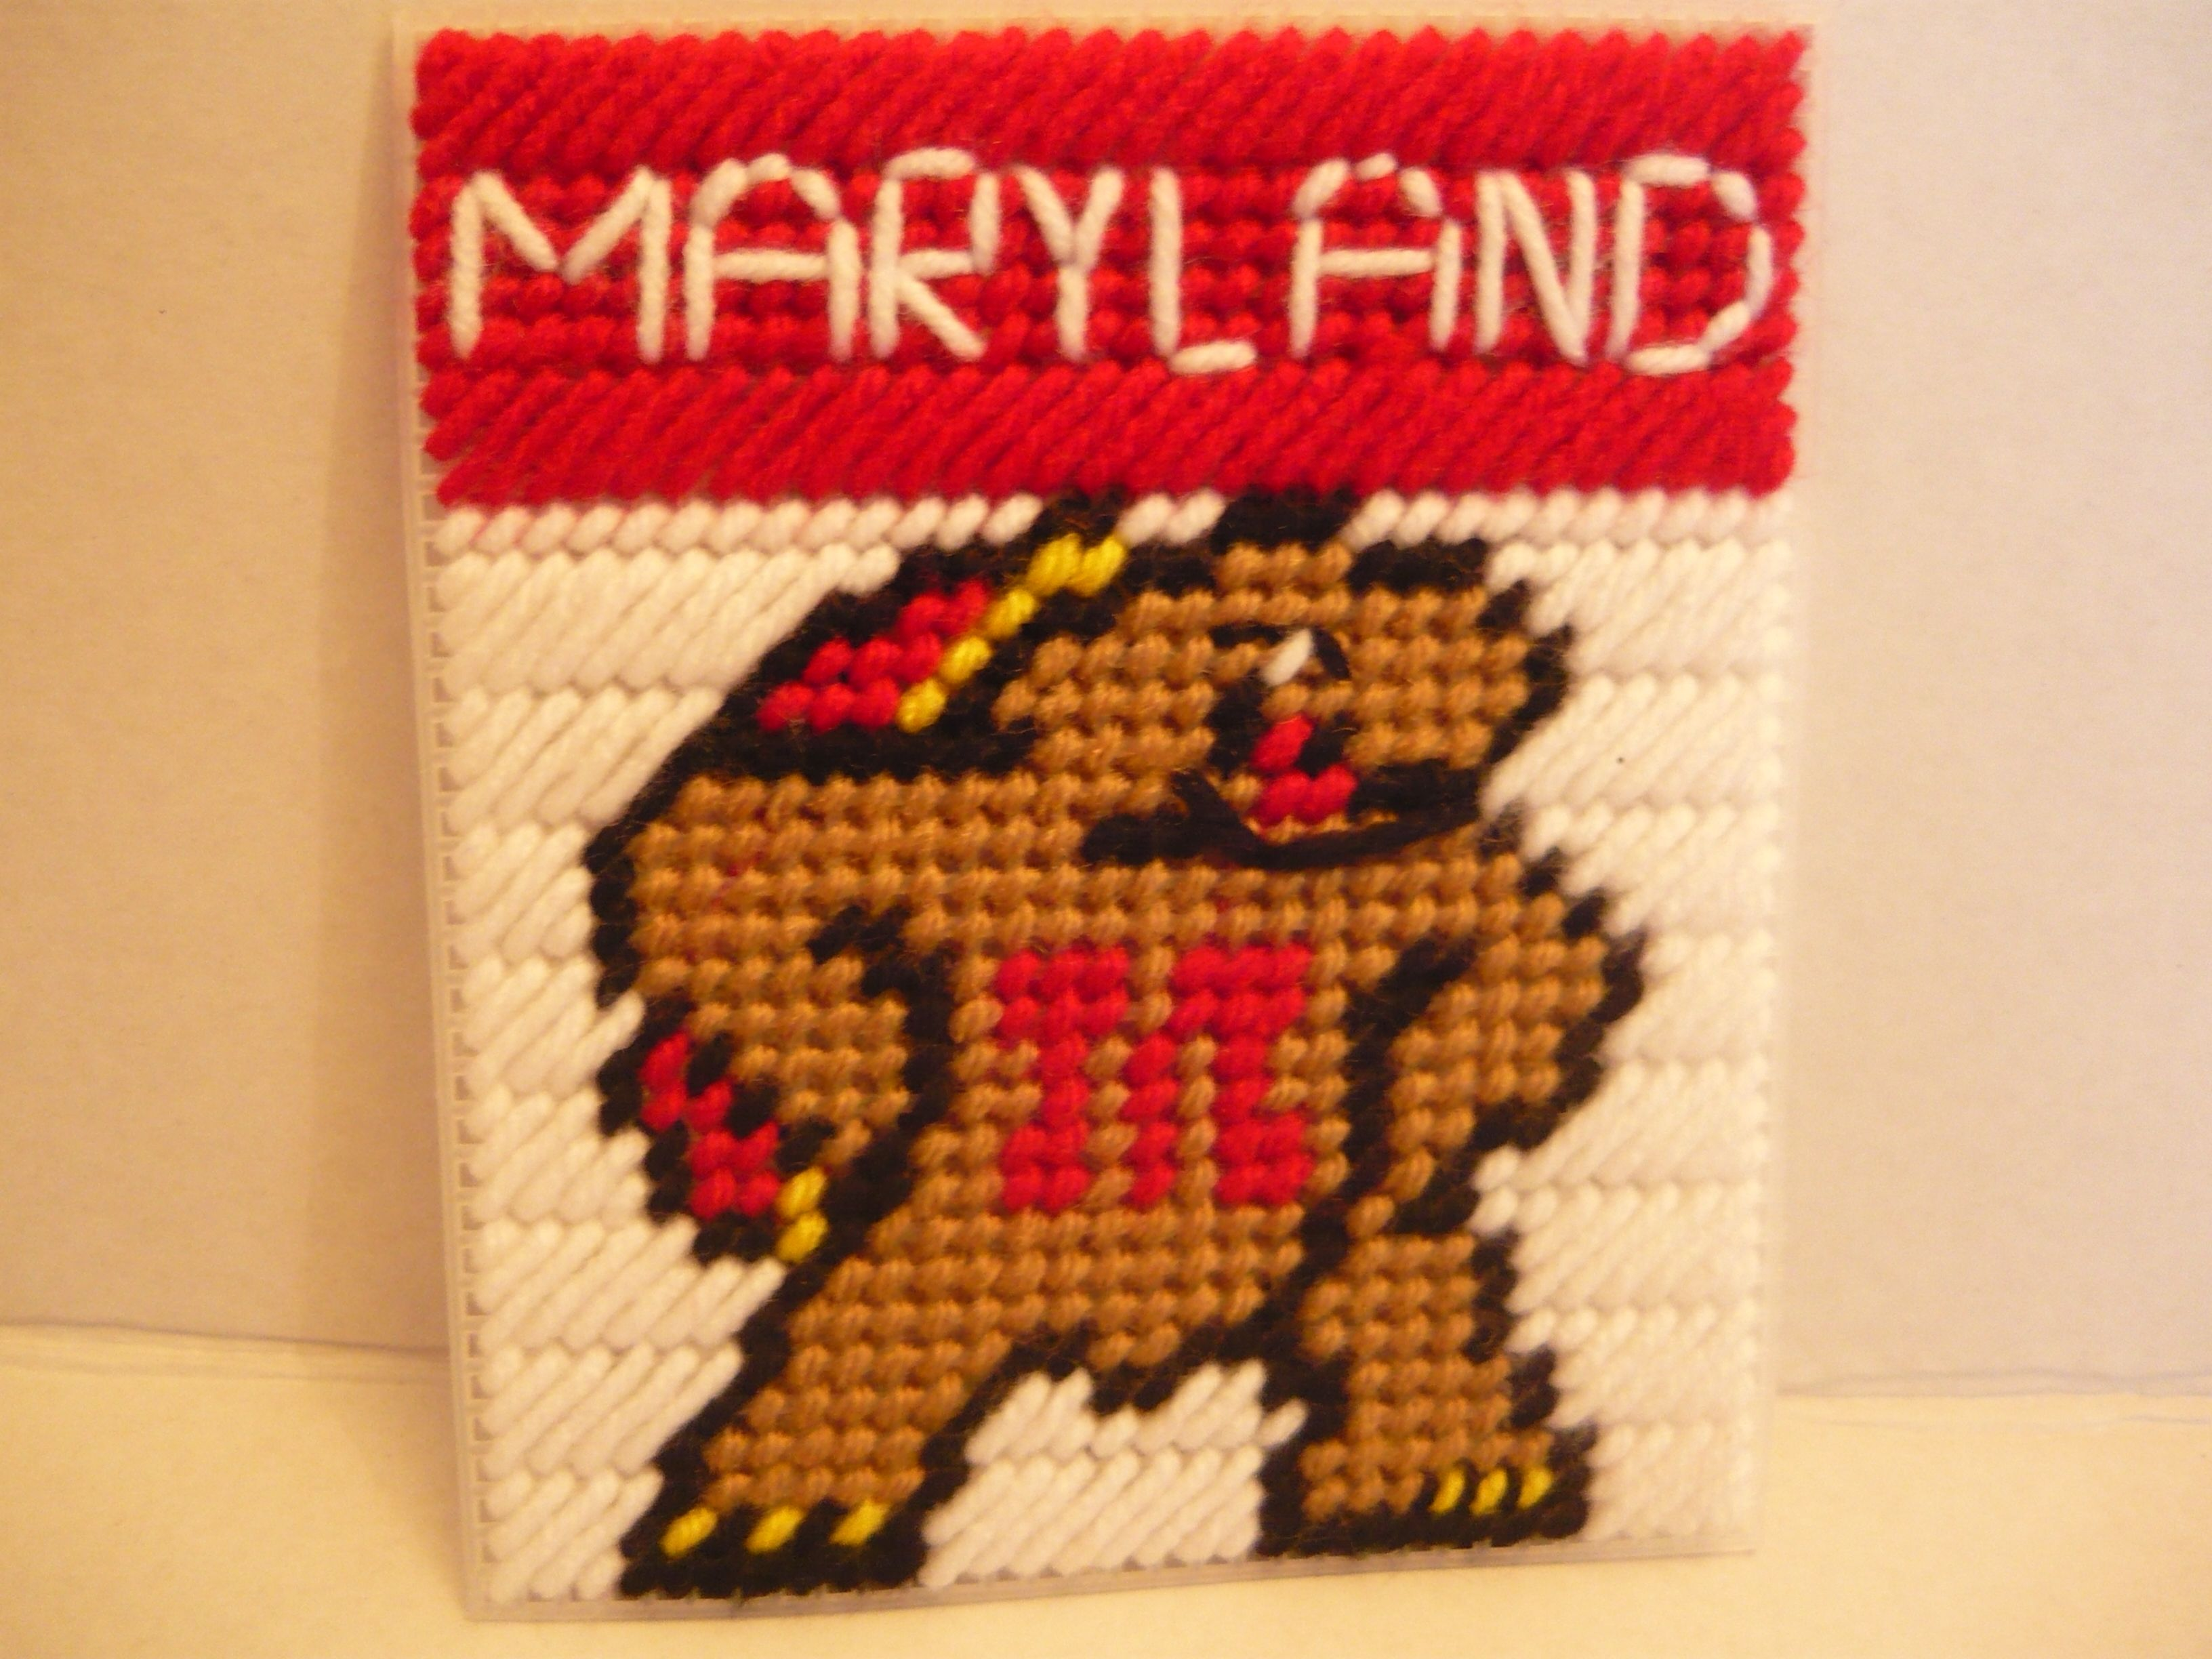 Maryland Plastic canvas patterns, College crafts, Canvas